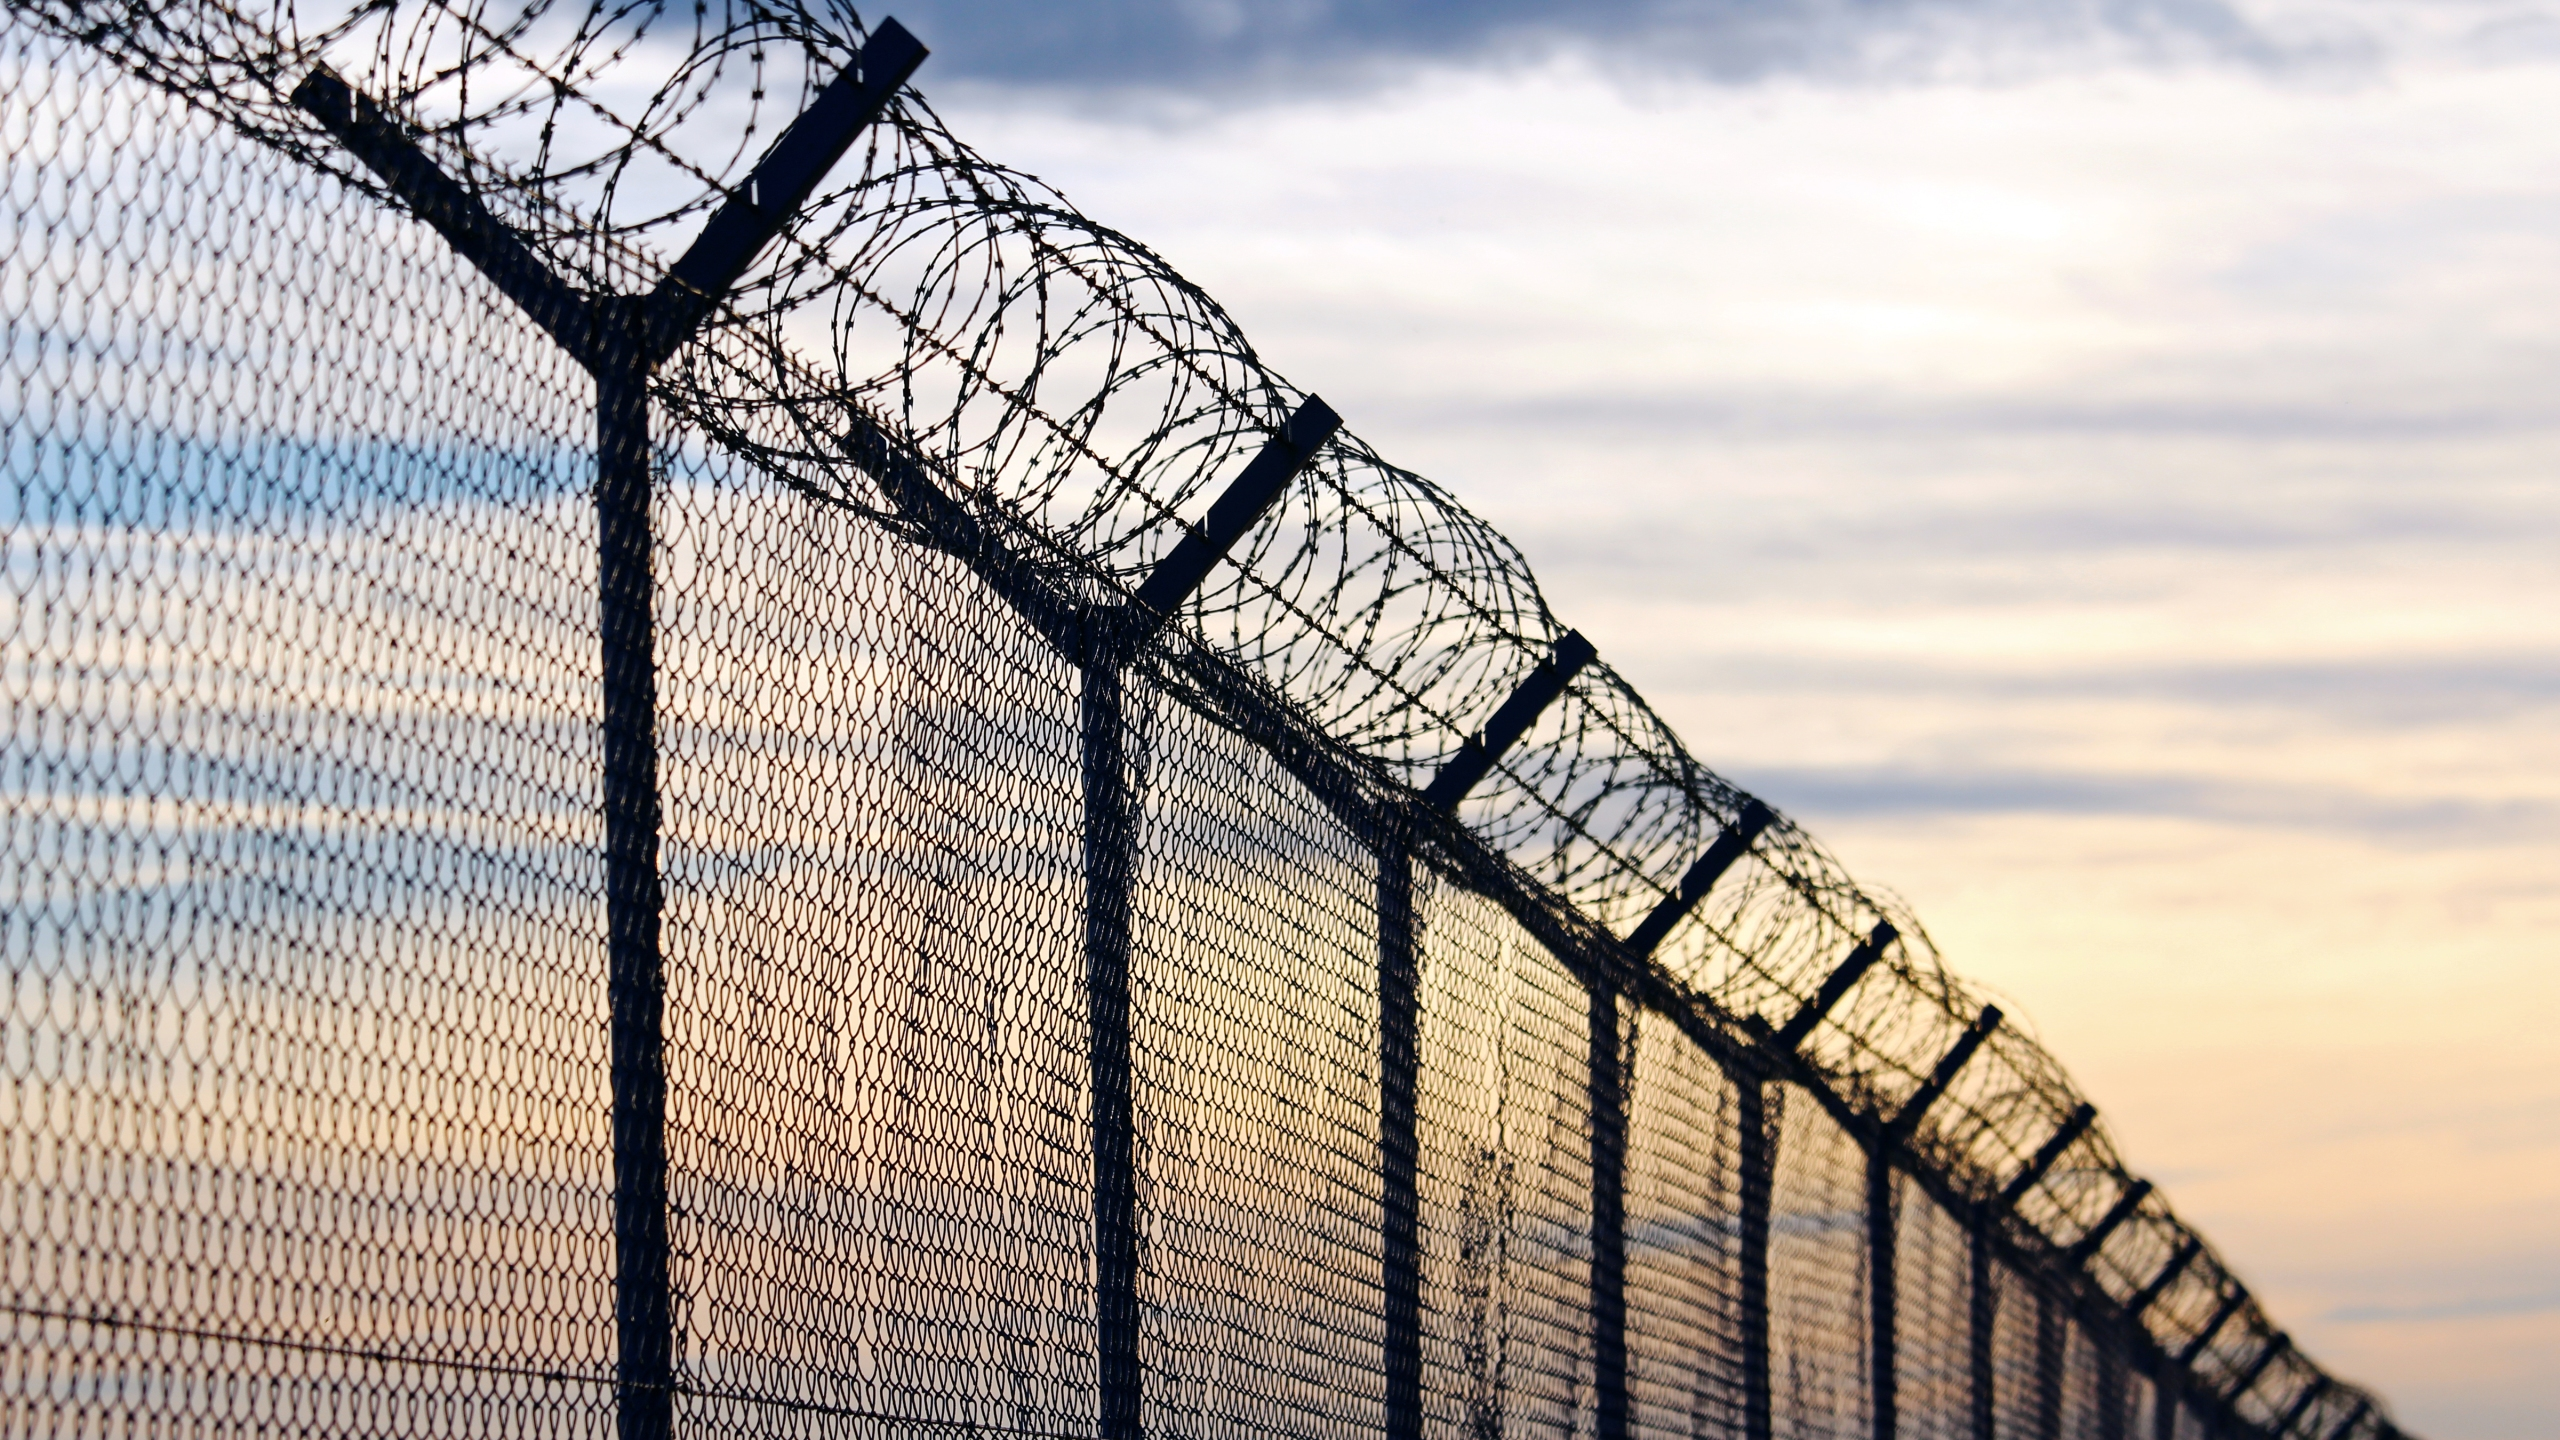 Barb wire is seen outside a prison in this file photo. (iStock / Getty Images Plus)